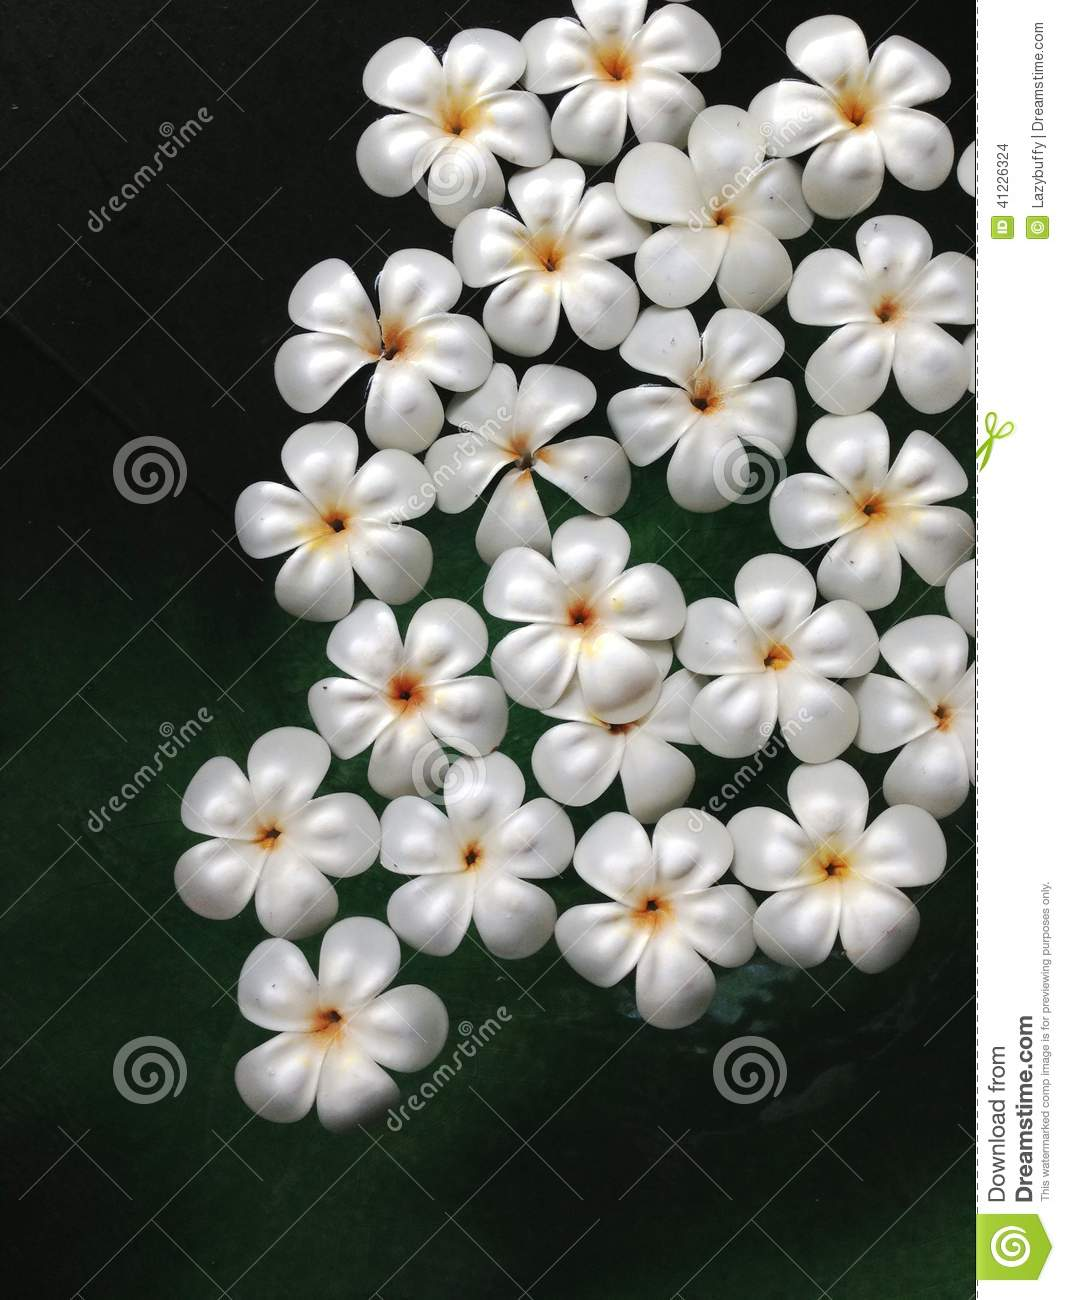 Plumeria flowers floating on the water stock photo image for Floating flowers in water